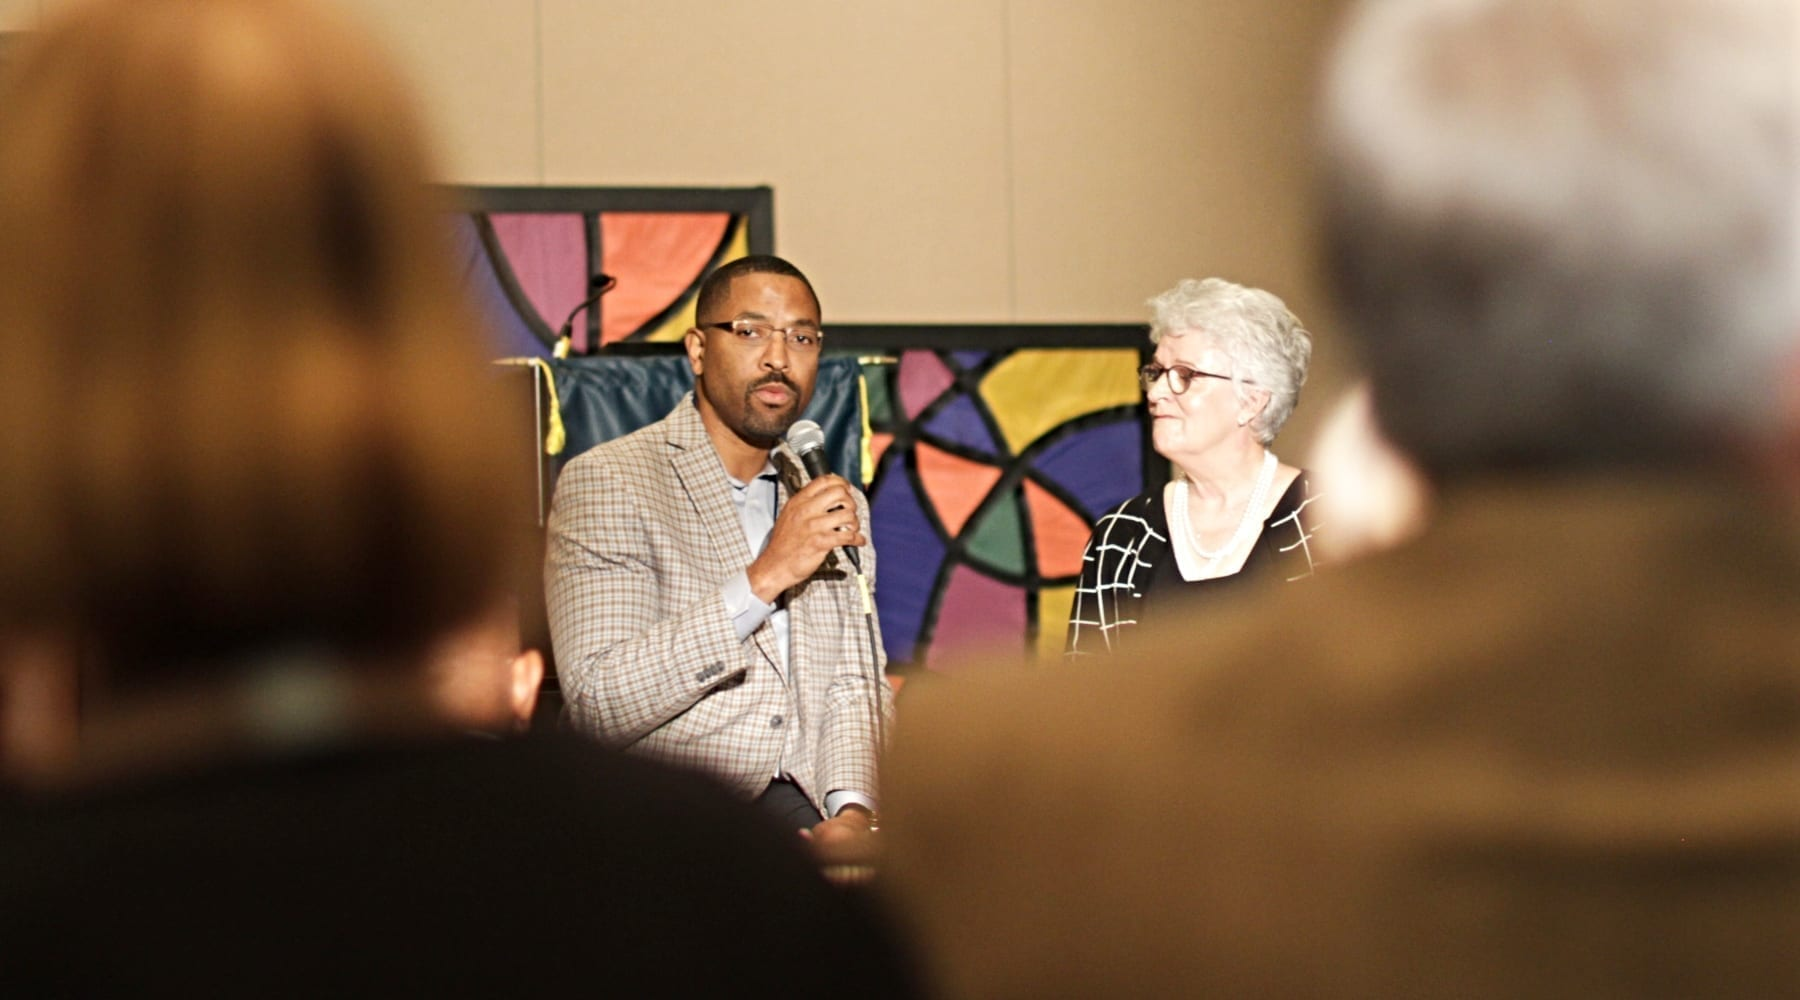 Baptists Gather to Explore Ways to Promote Racial Justice